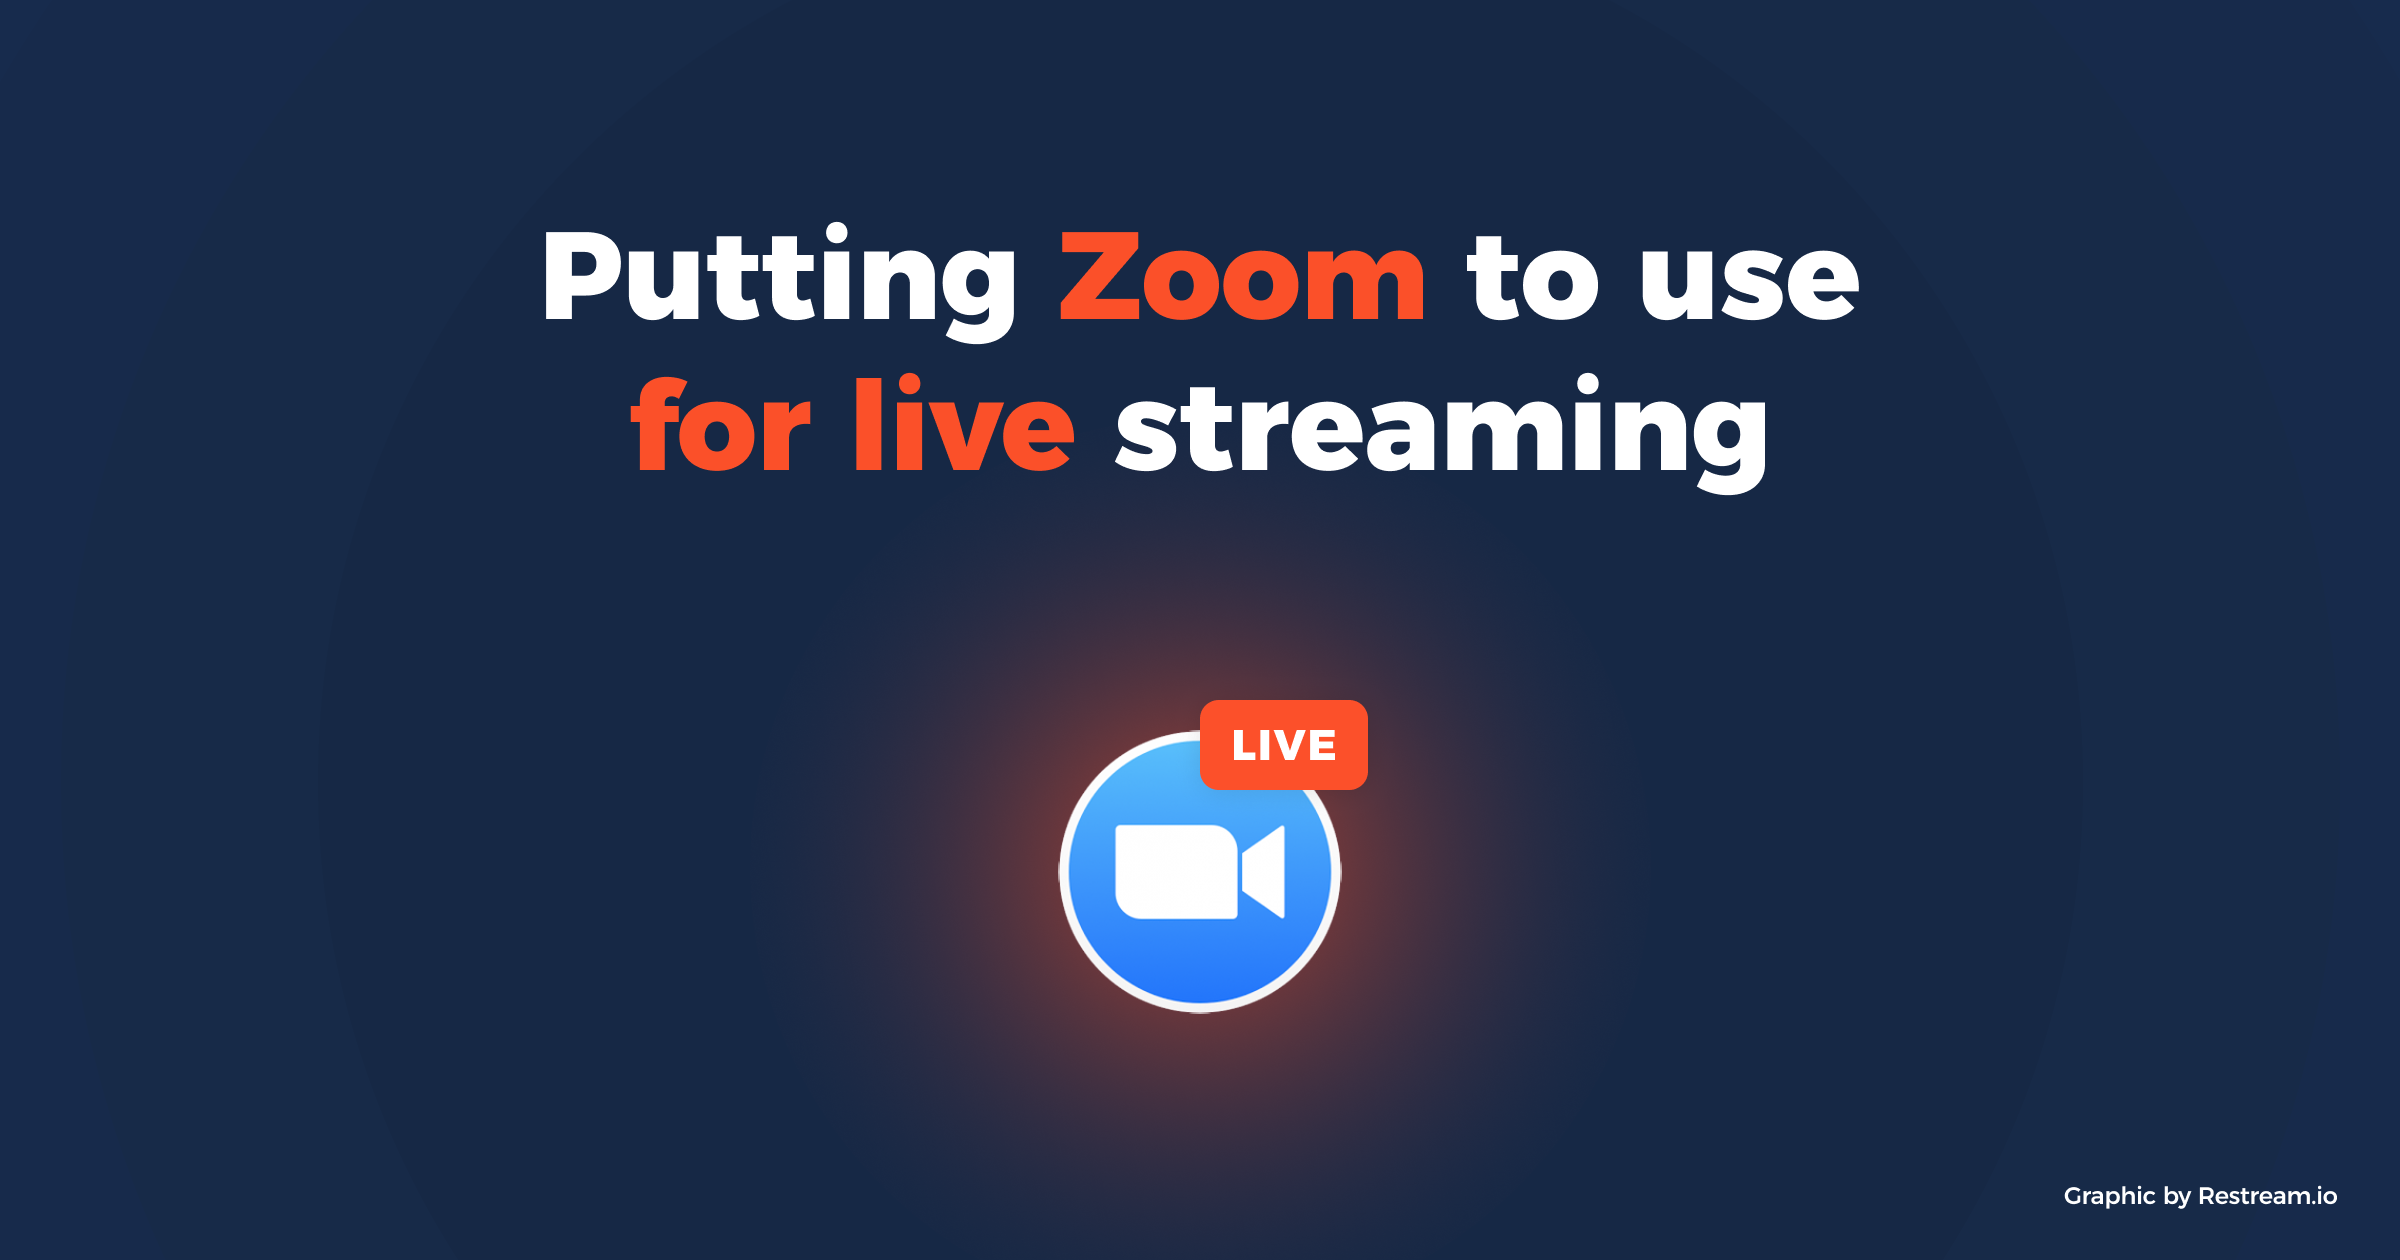 Putting Zoom to use for live streaming